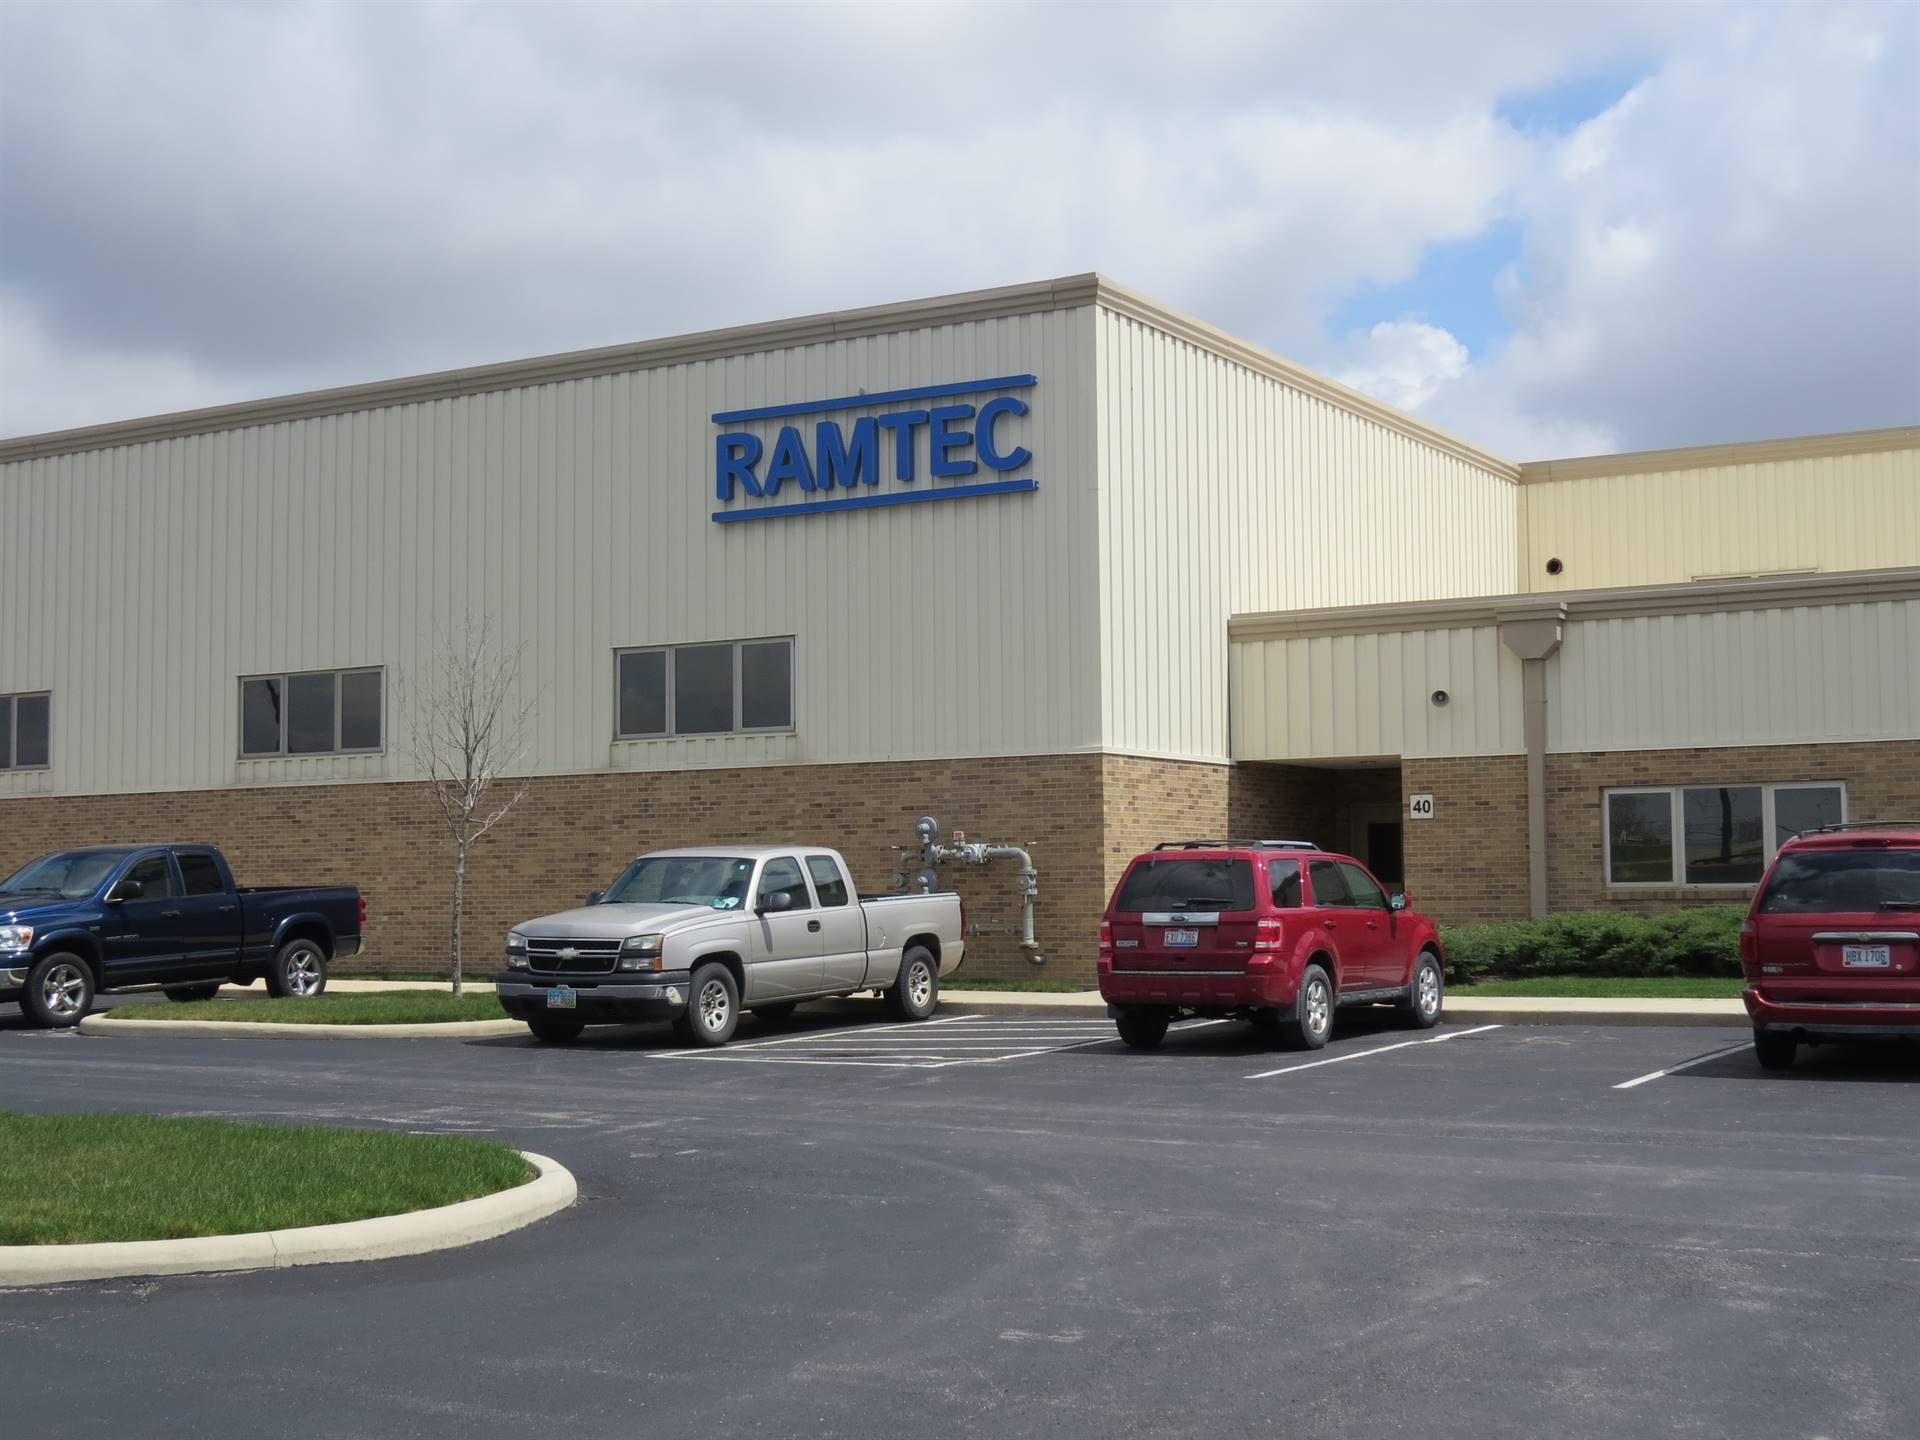 Picture of Vantage Career Center building with RAMTEC sign